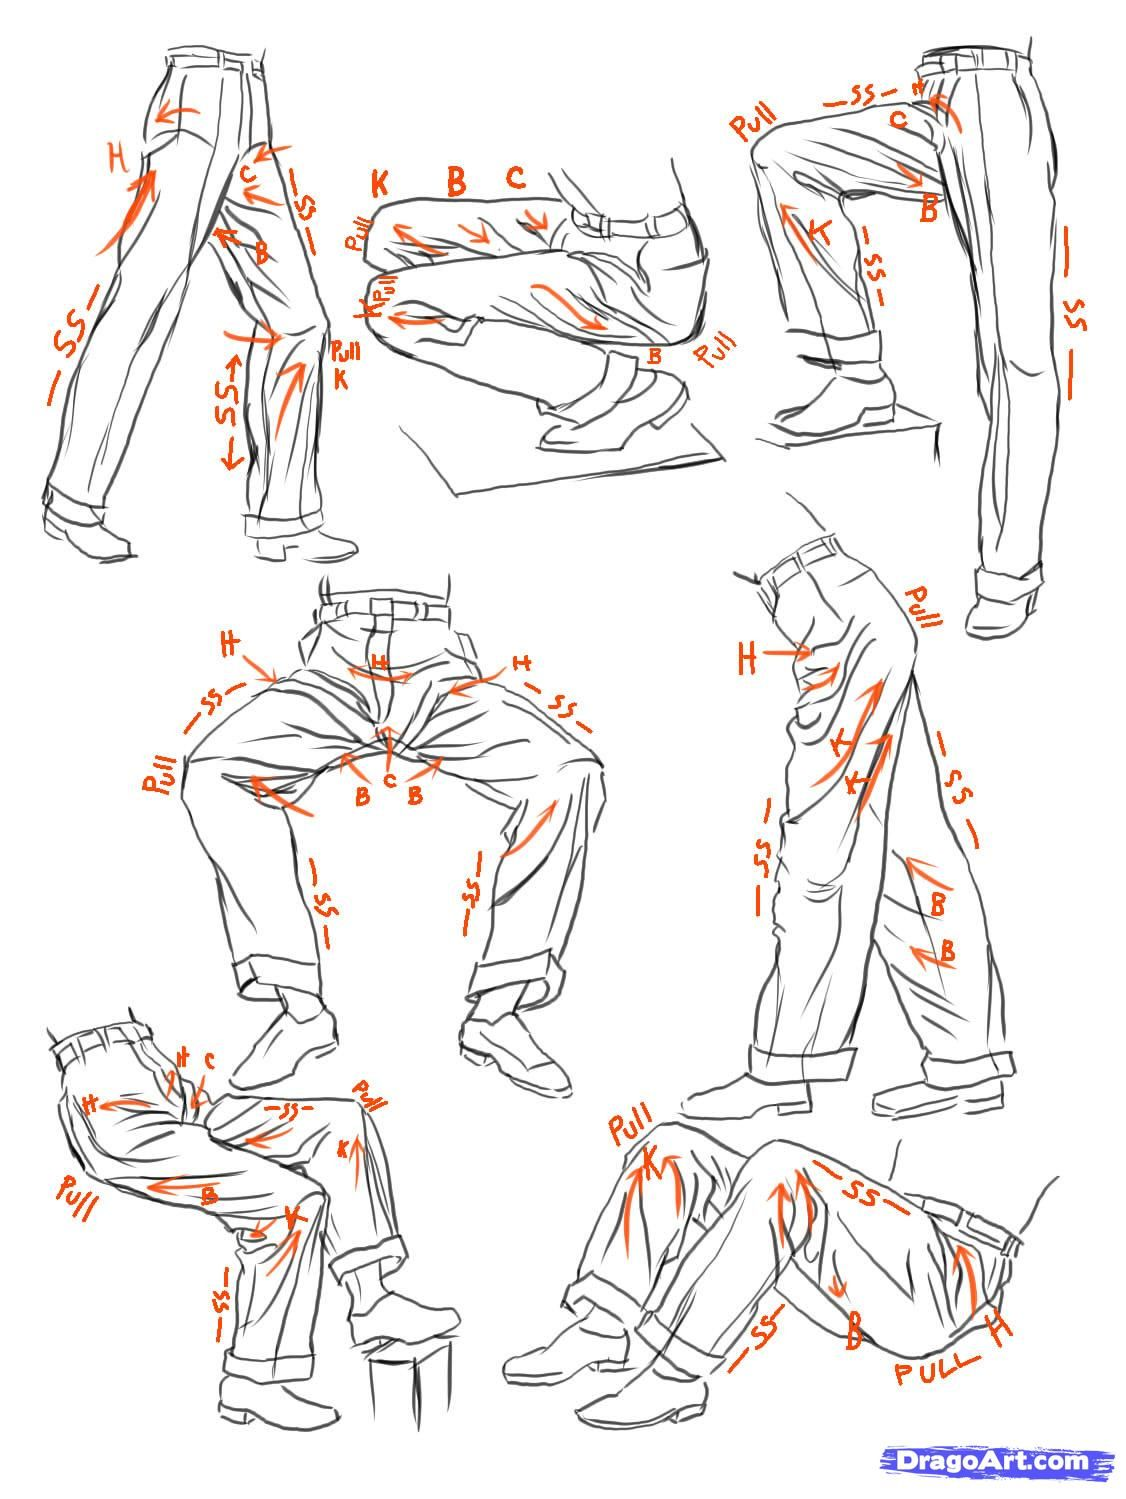 How To Sketch Anime Clothes Step By Step Anime People Anime Draw Japanese Anime Draw Manga Free On Anime Drawings Tutorials Drawing People Online Drawing